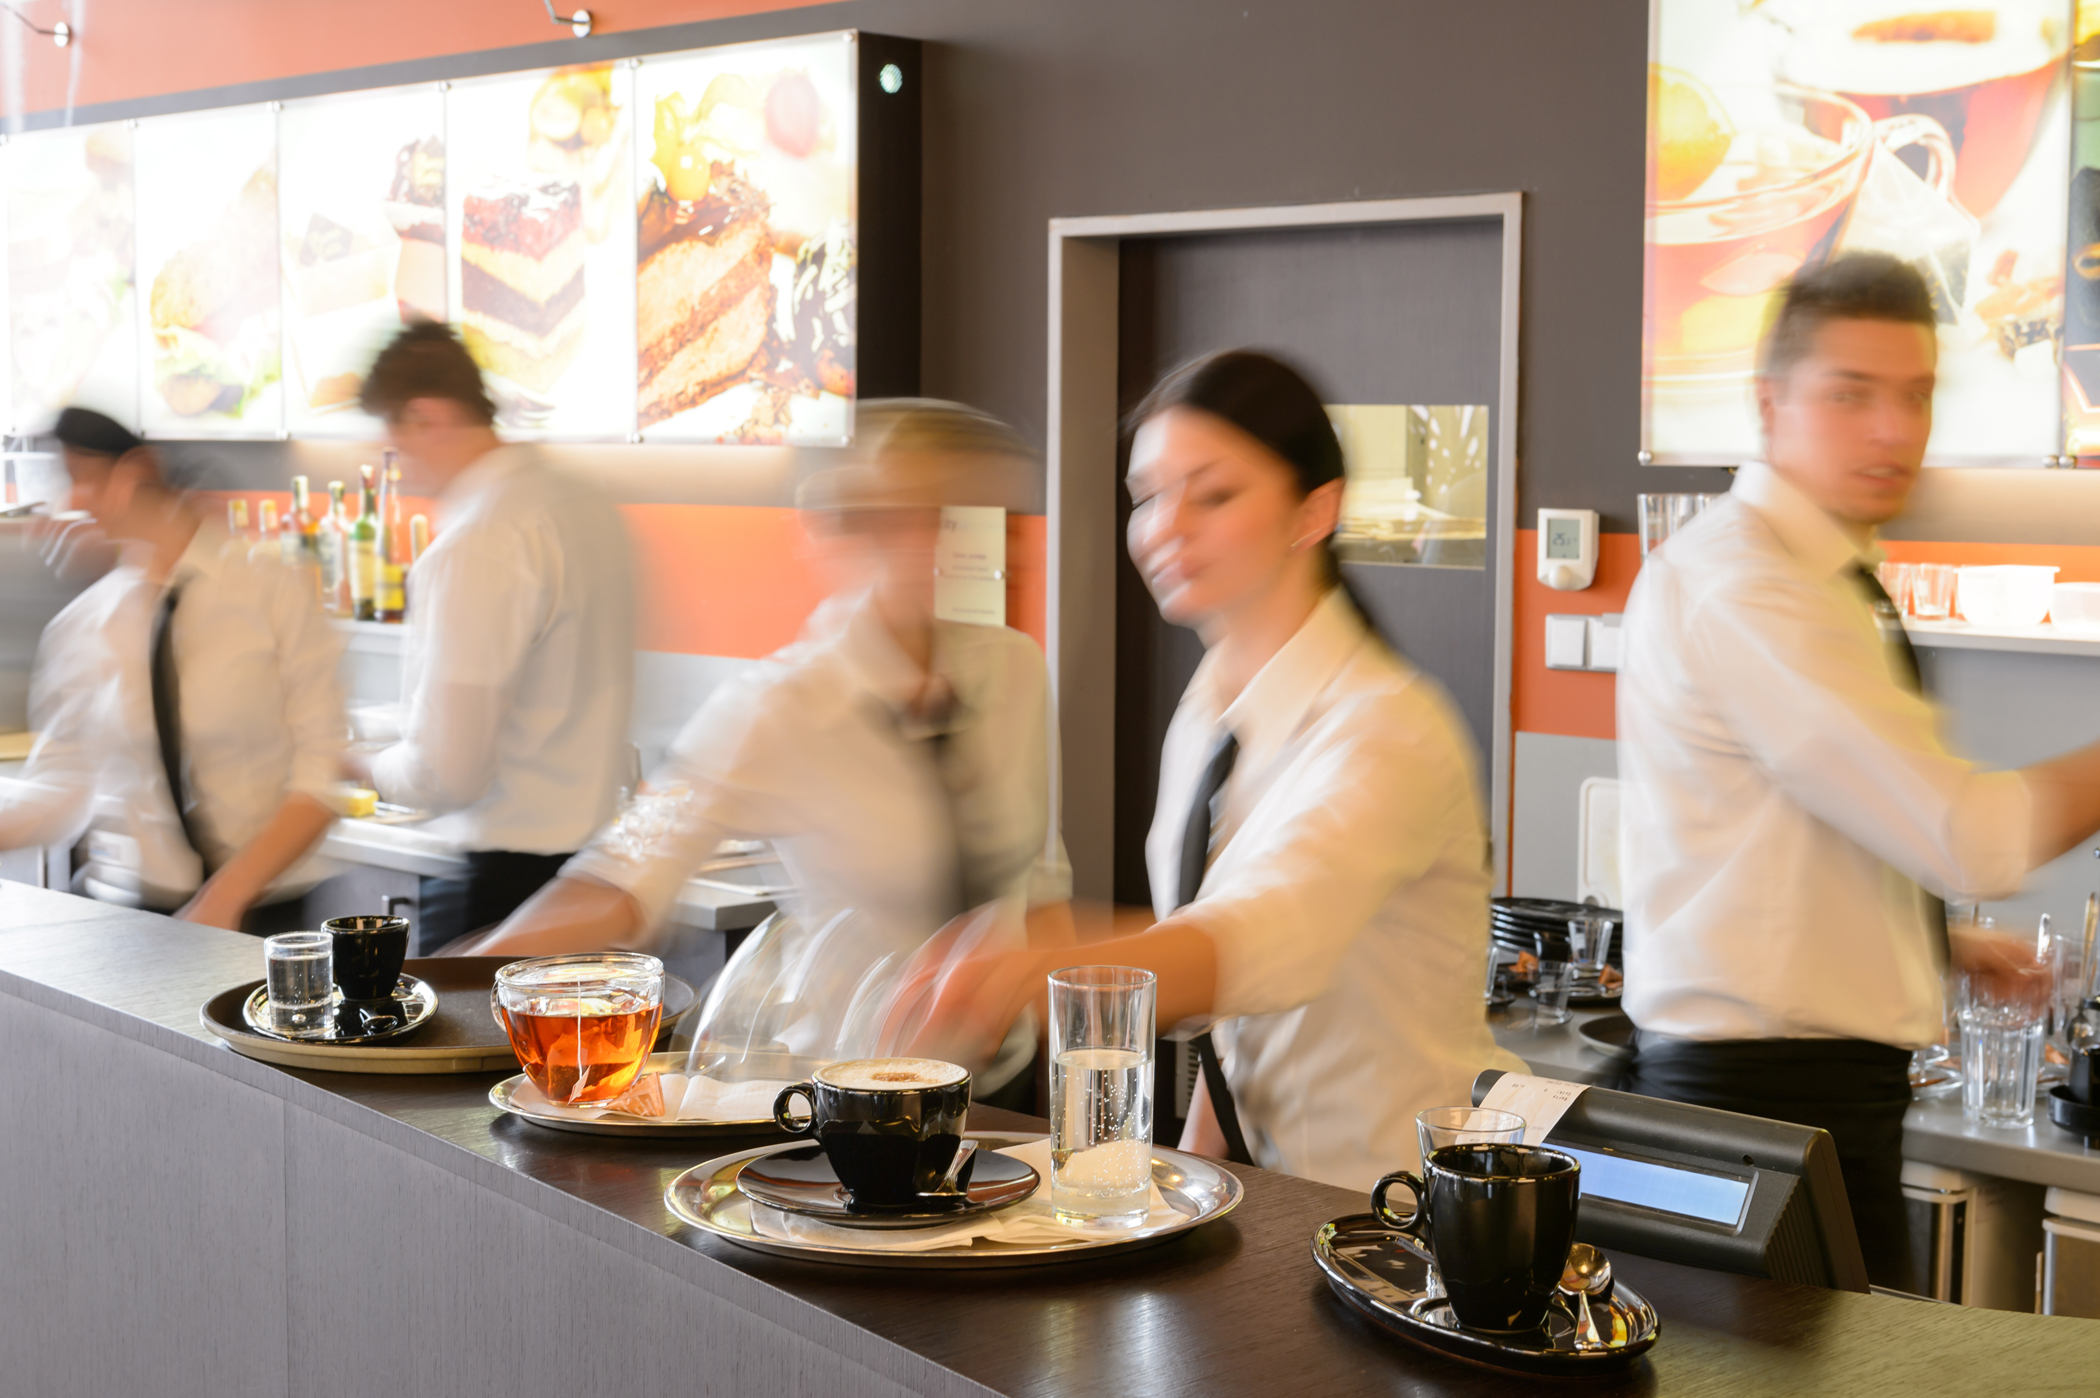 restaurants help feed job growth how the leisure and hospitality image